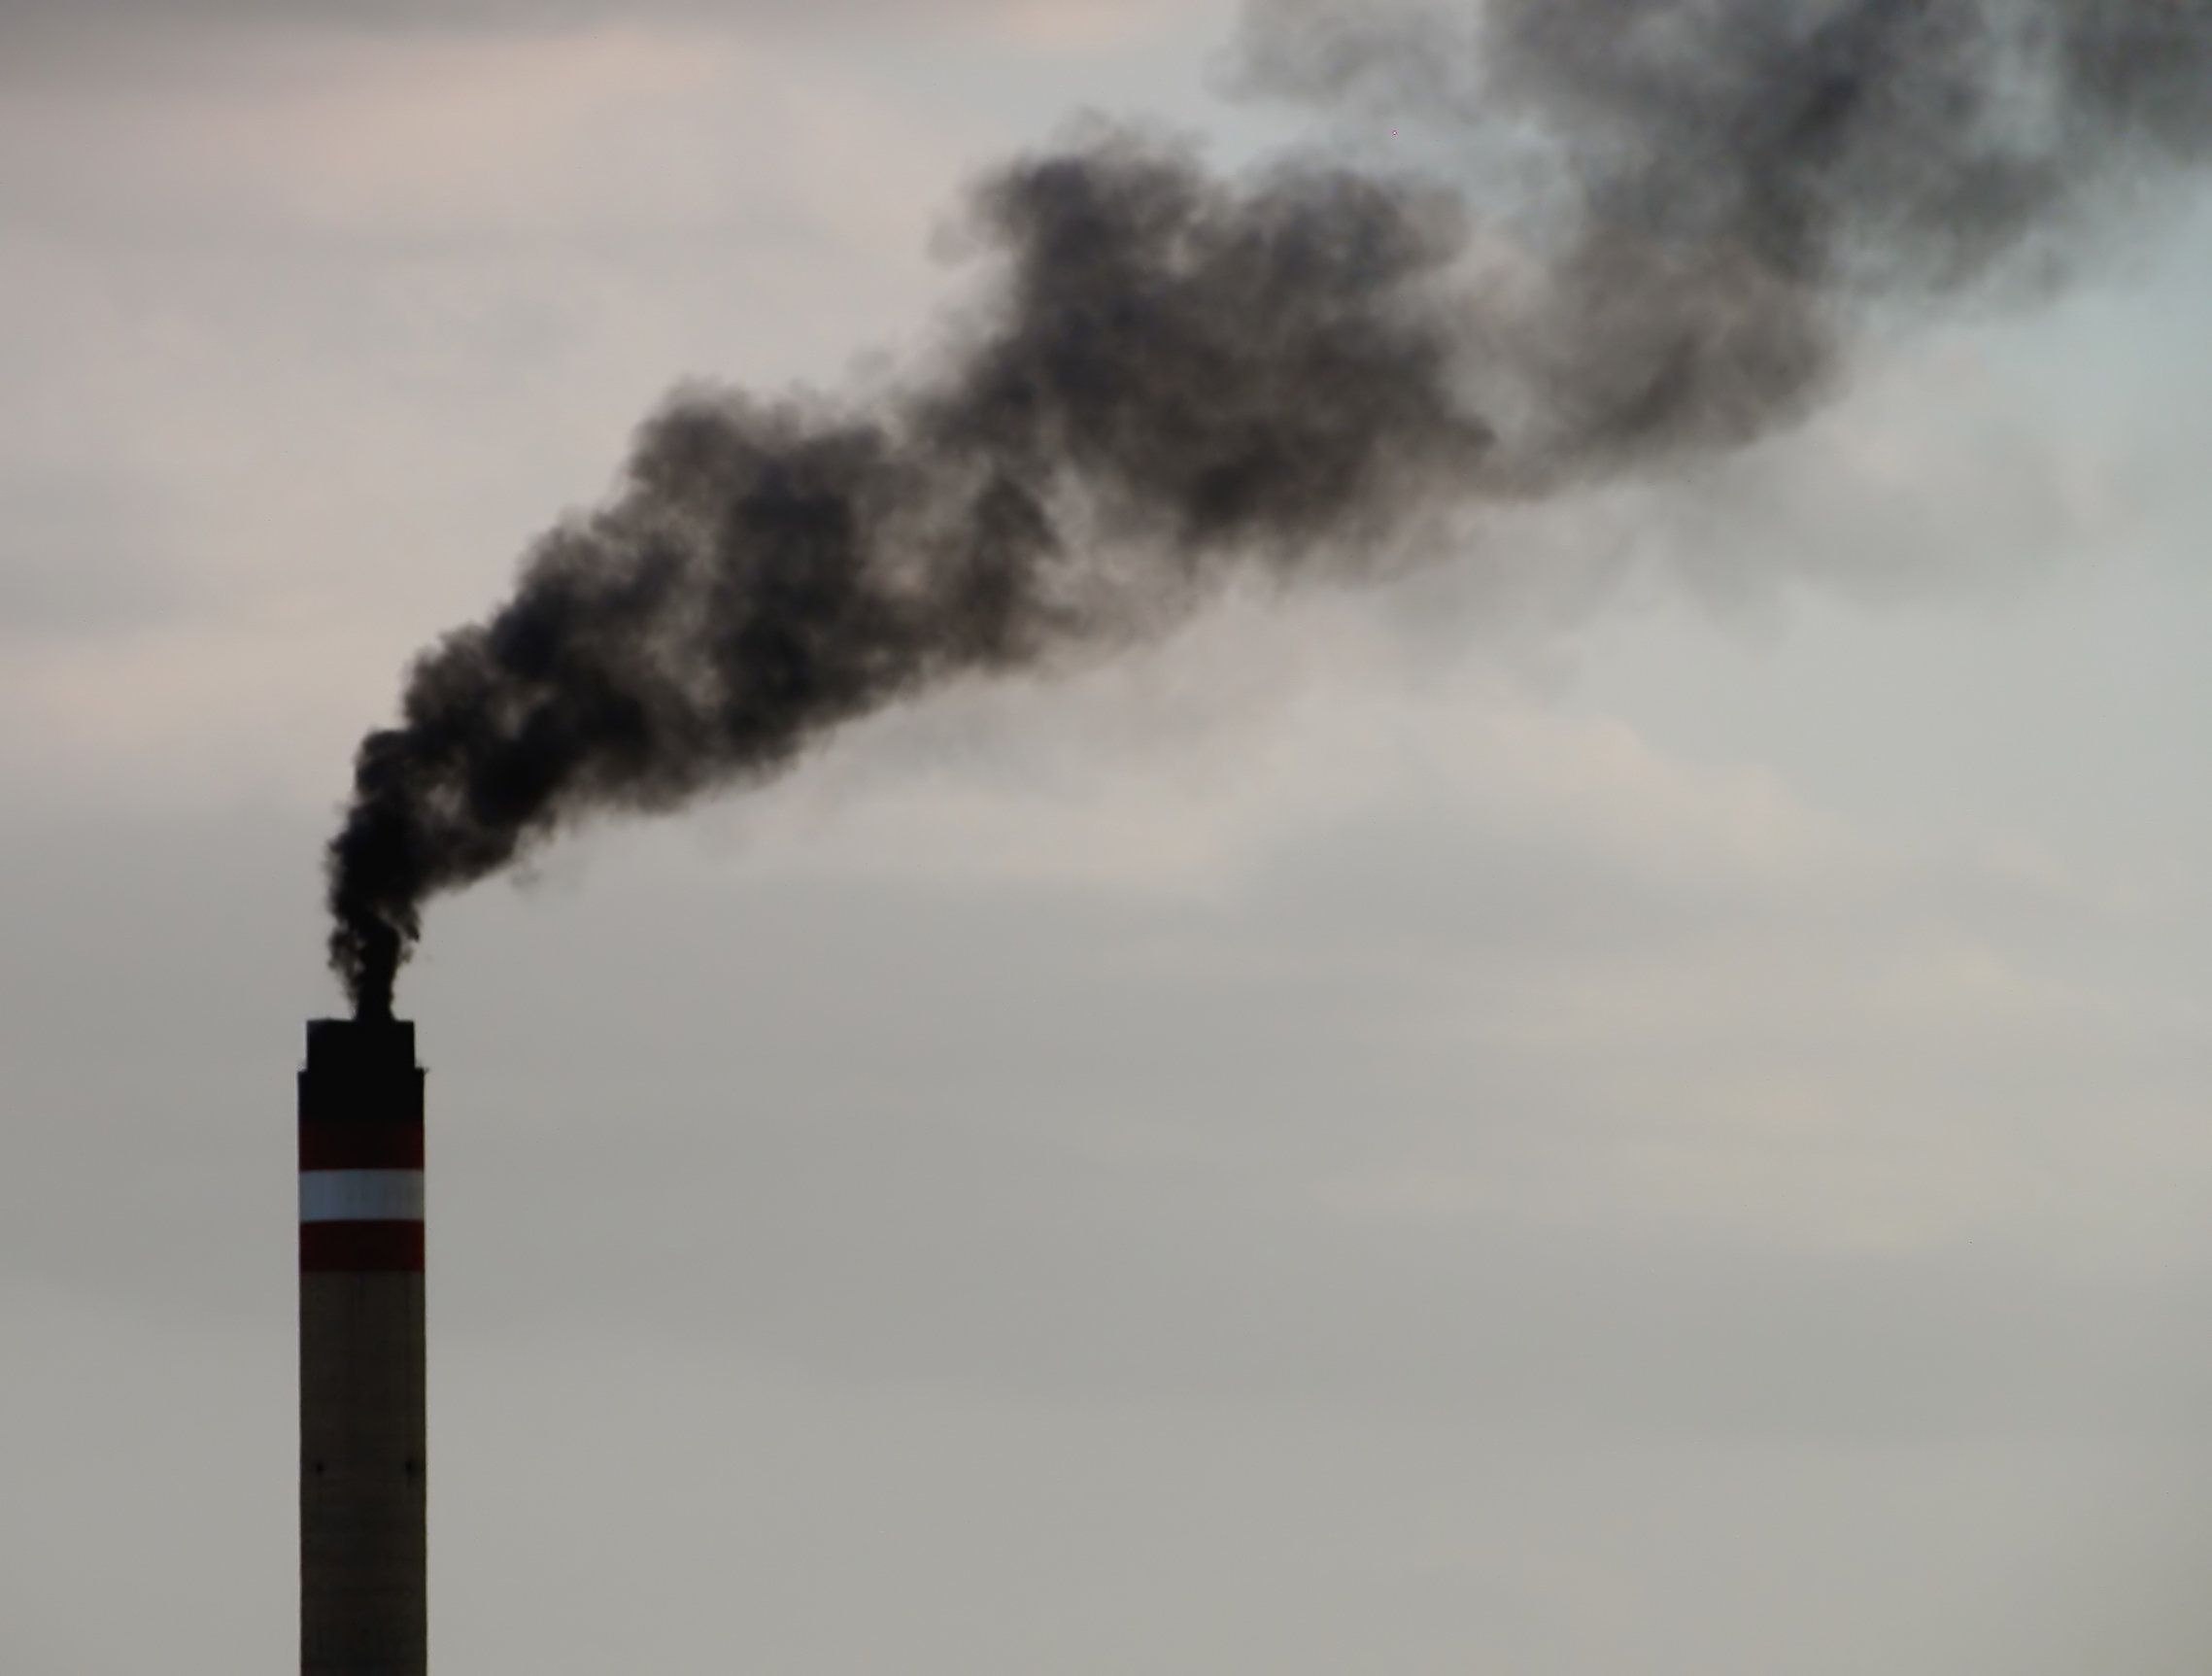 Smoke from a coal-fired power plant.